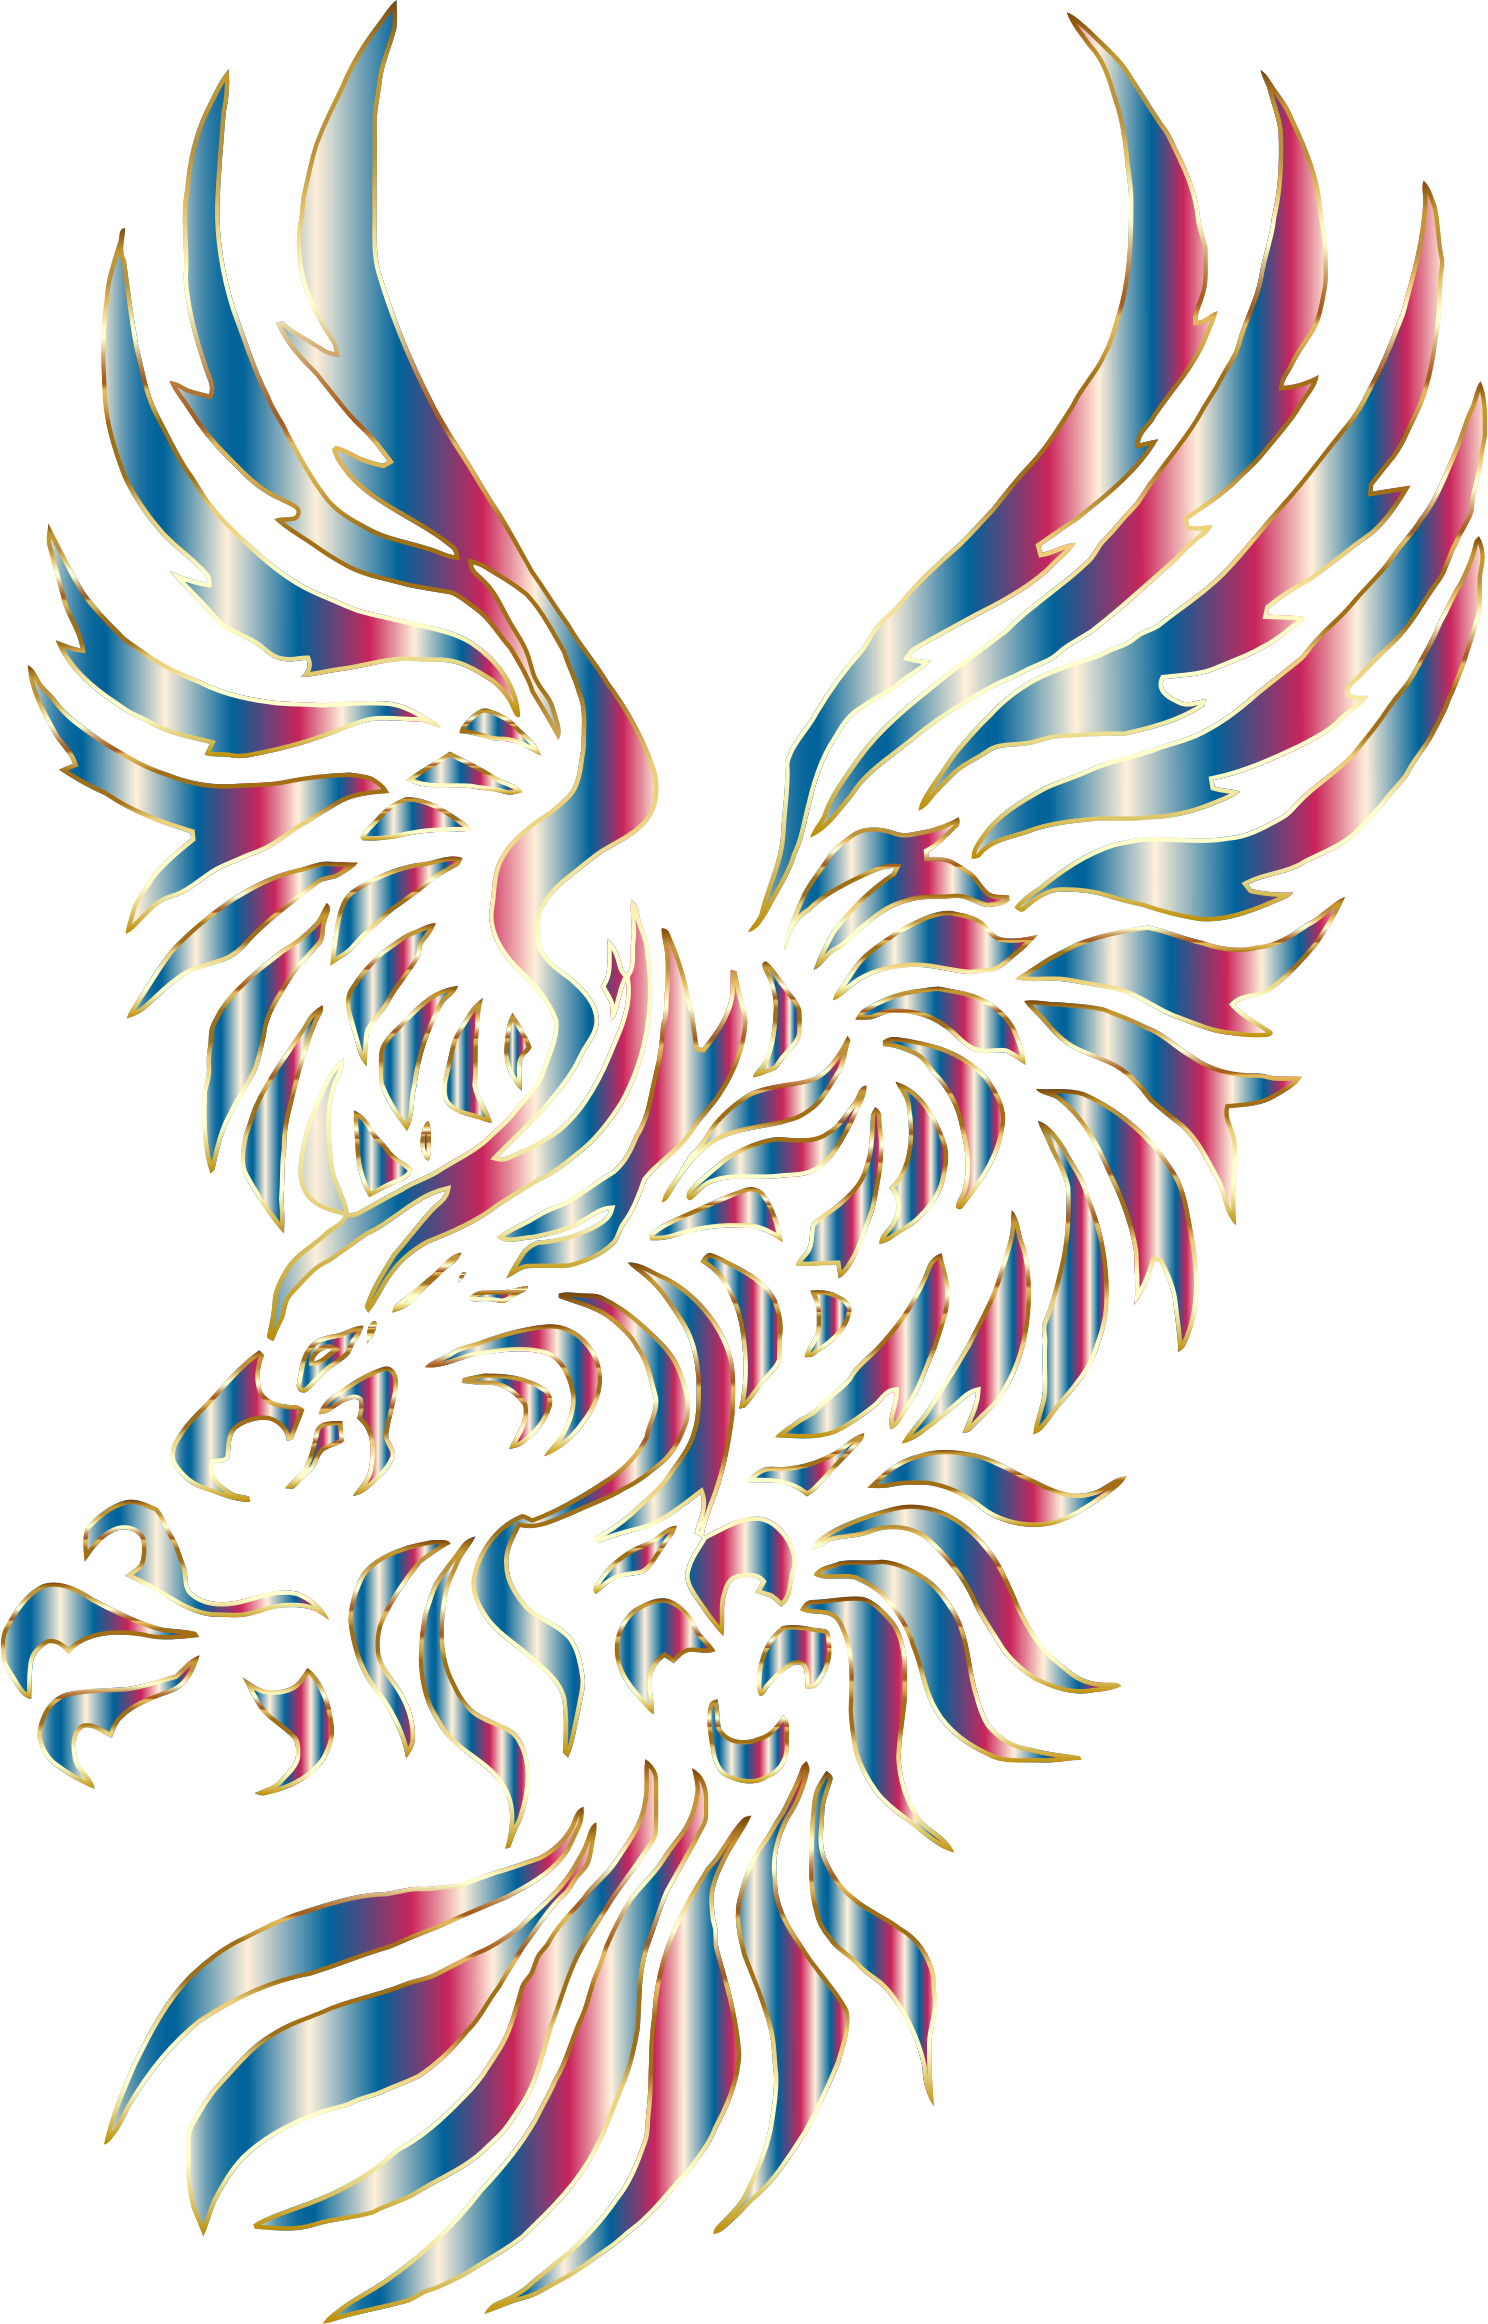 Chromatic Tribal Eagle 2 No Background by GDJ